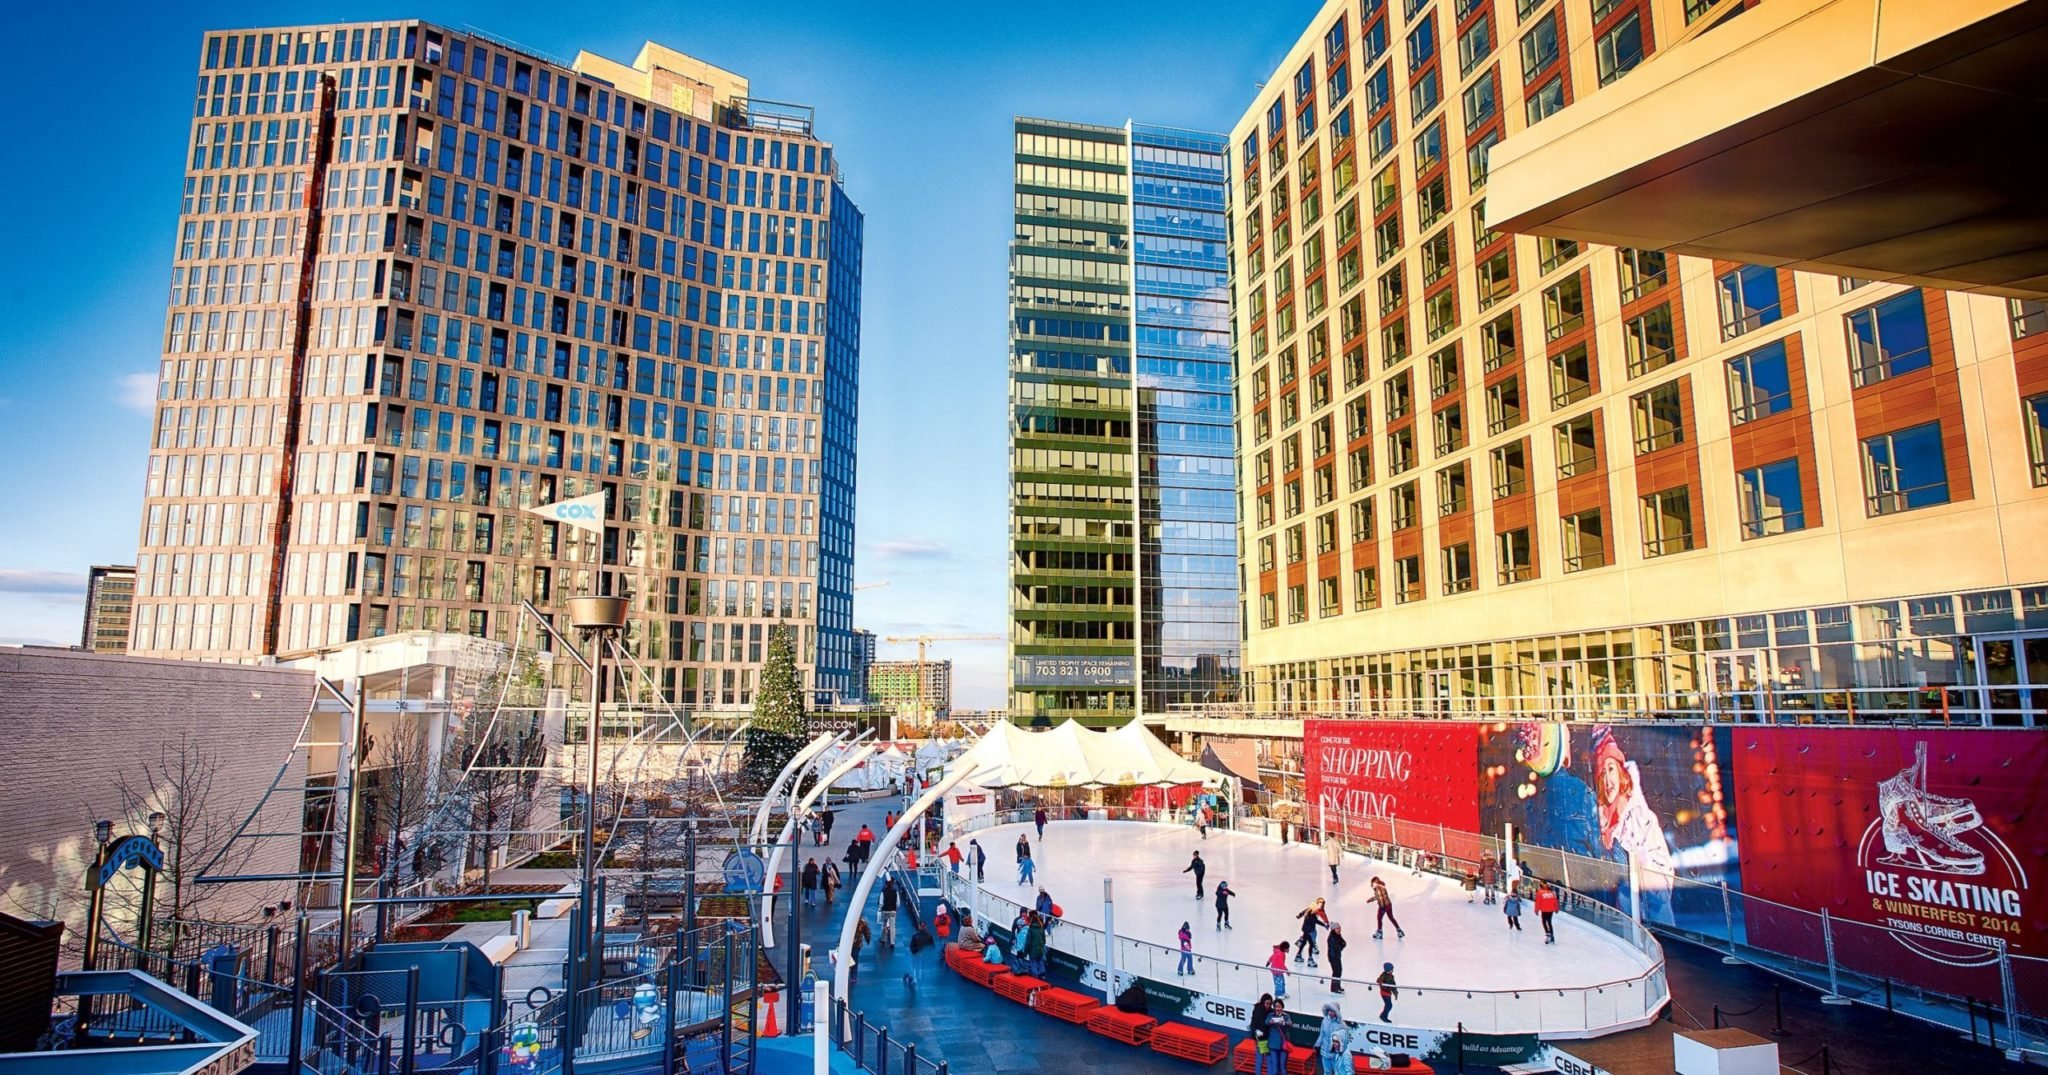 Vienna and McLean Neighborhood Guide: Take a break from the mall with a spin around the ice rink at Tysons Corner Center, open through March 6. Photograph by Rassi Borneo.